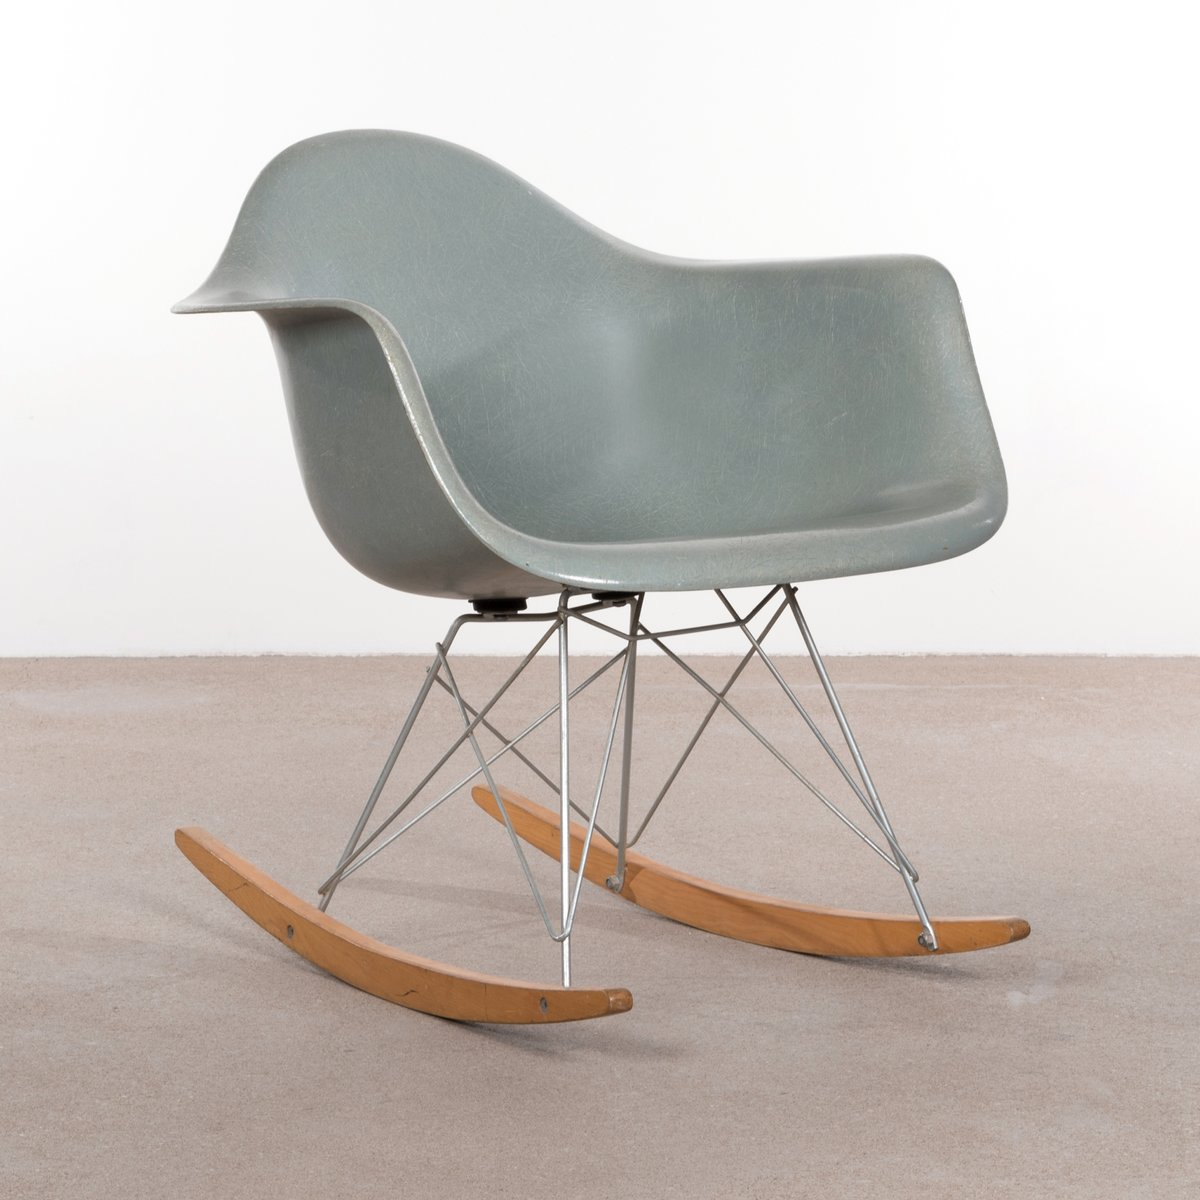 and charles eames chair walnut face dsw stylish modern legs furniture ray contemporary slate style retro side danish